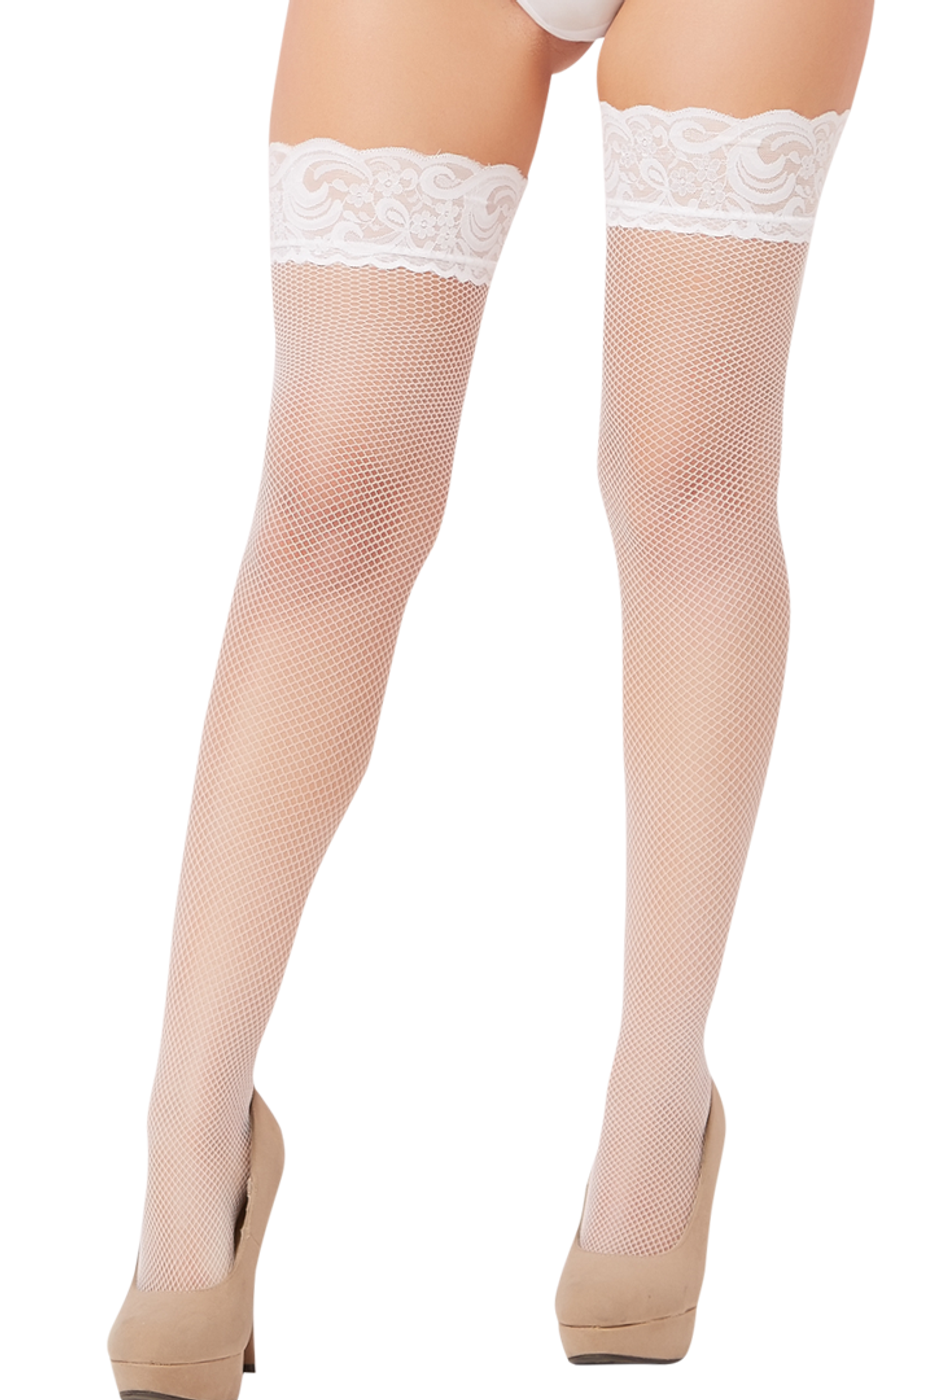 2471042f37155 shop this women's sexy white fishnet nylon stocking pantyhose with lace tops